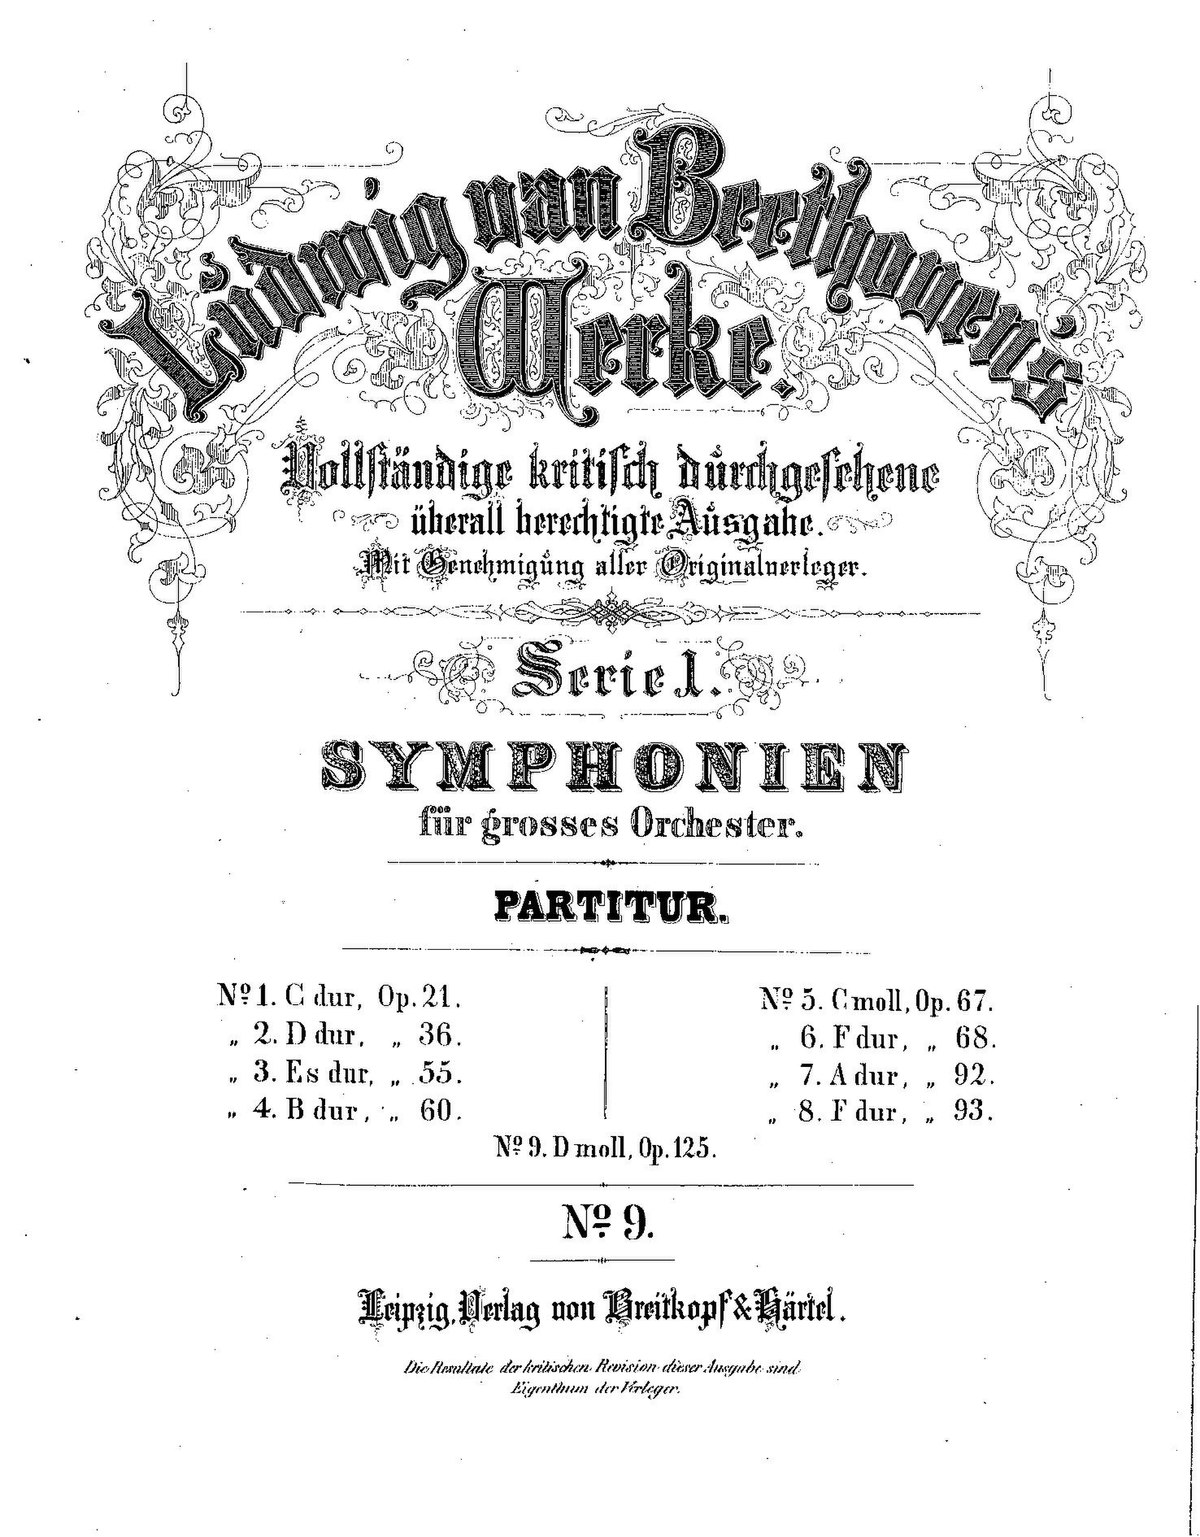 7 Years Piano Pdf list of compositionsludwig van beethoven - wikipedia